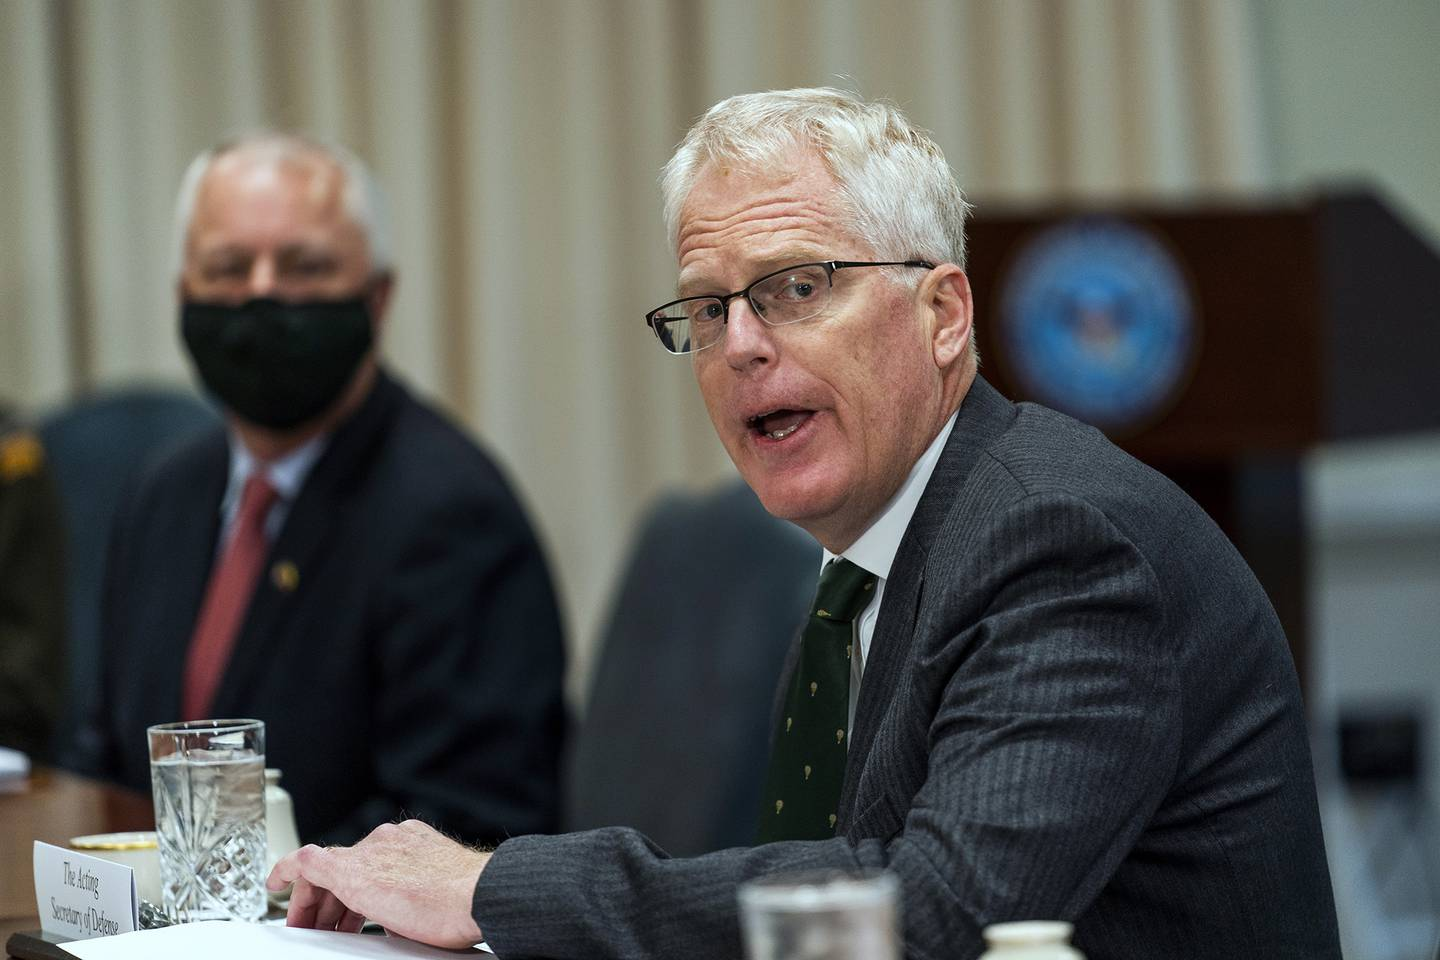 Acting Secretary of Defense Christopher Miller speaks during a meeting with Lithuanian Minister of National Defence Raimundas Karoblis at the Pentagon, Friday, Nov. 13, 2020.